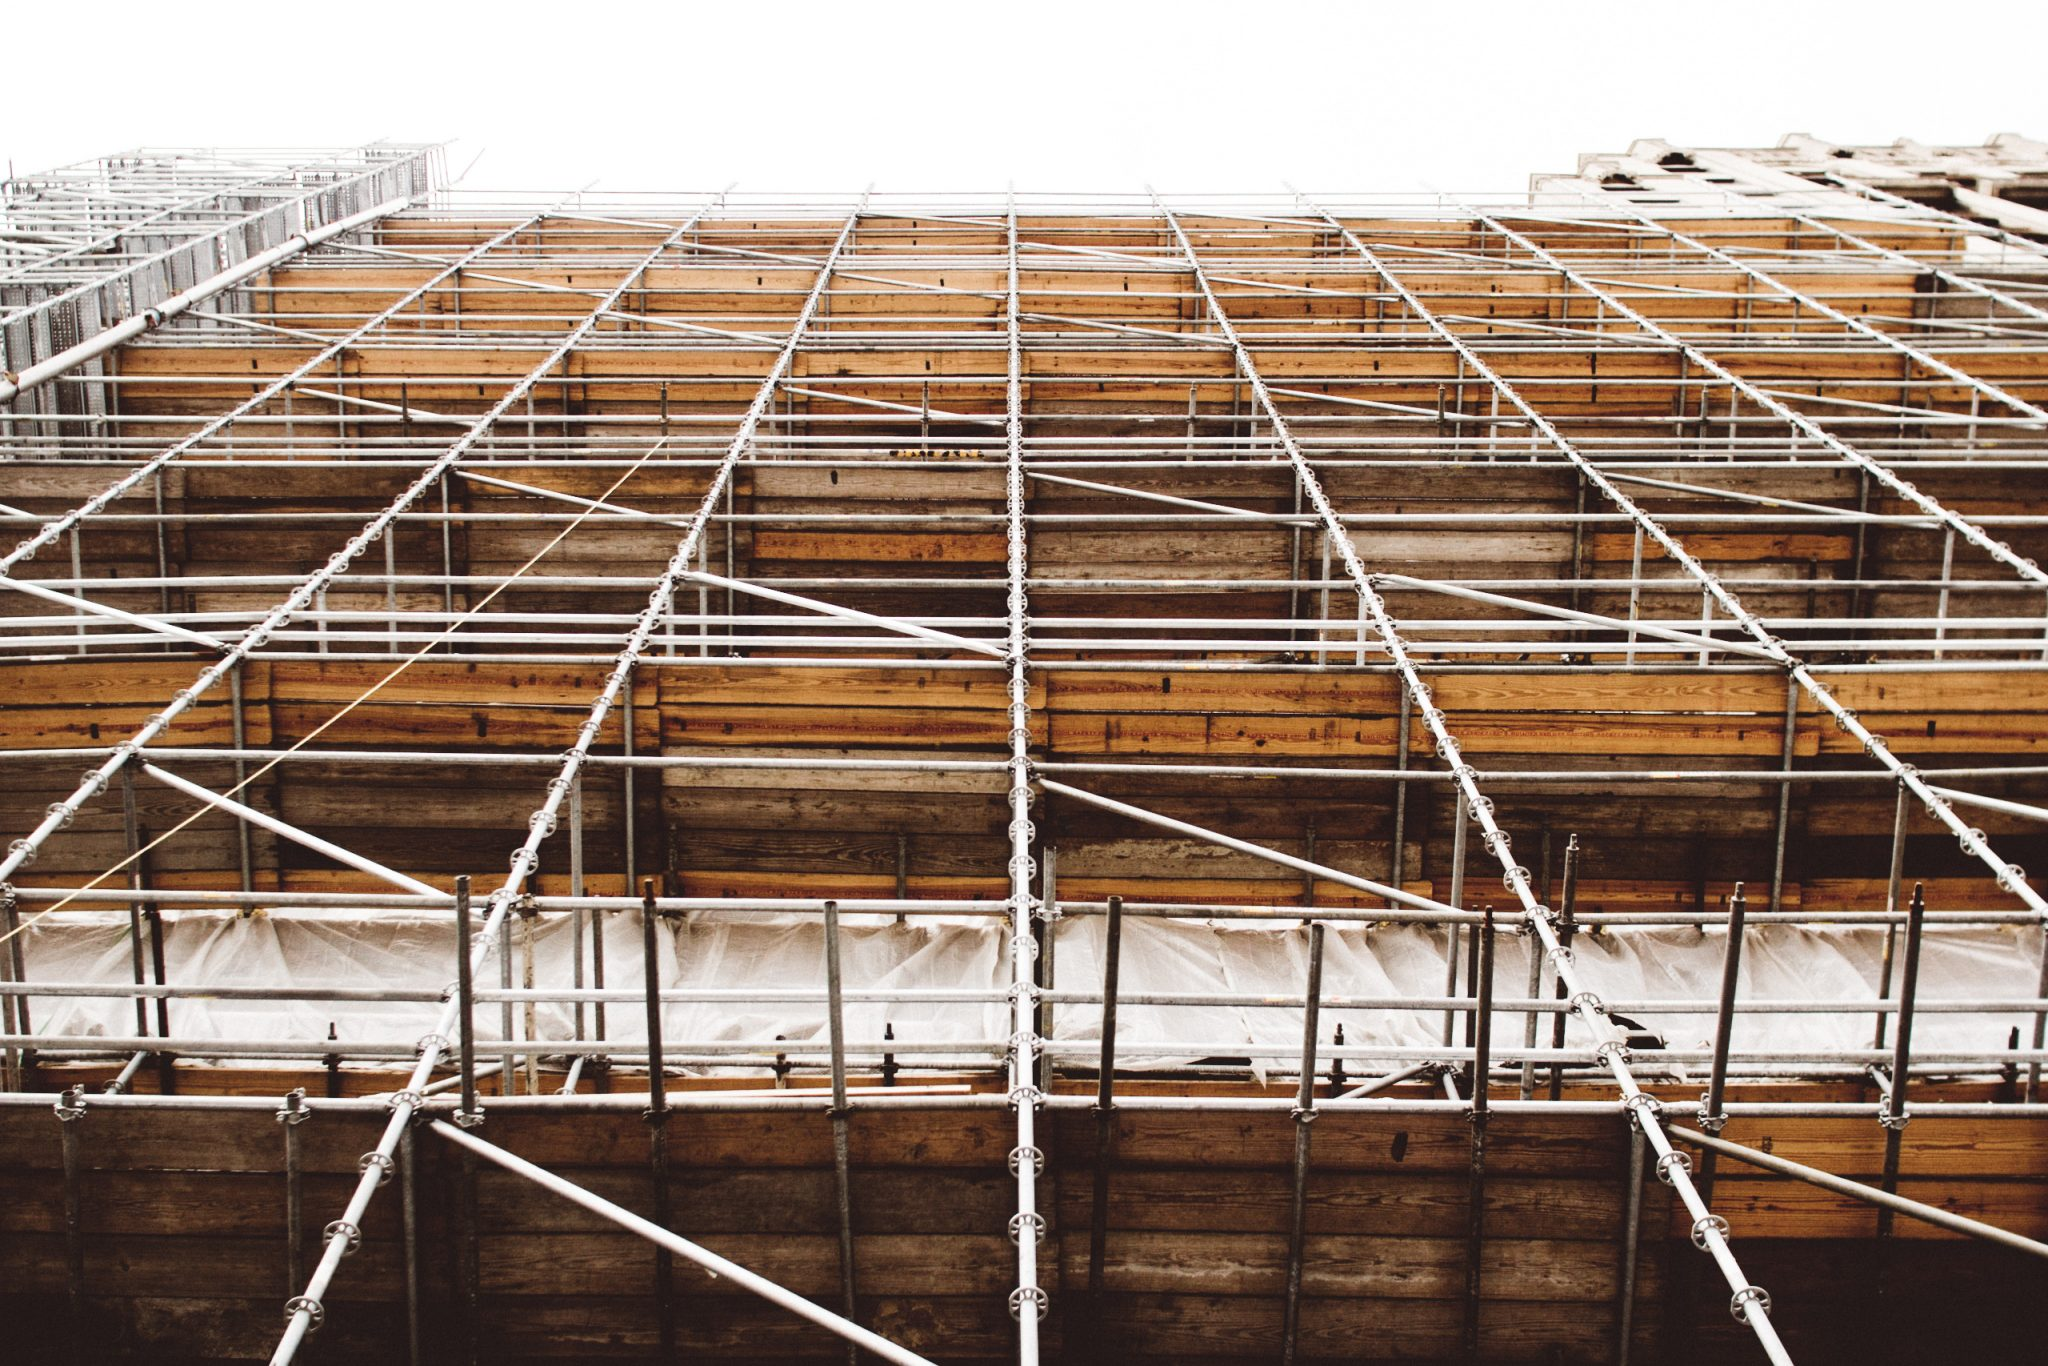 Do you need rope access or scaffolding?